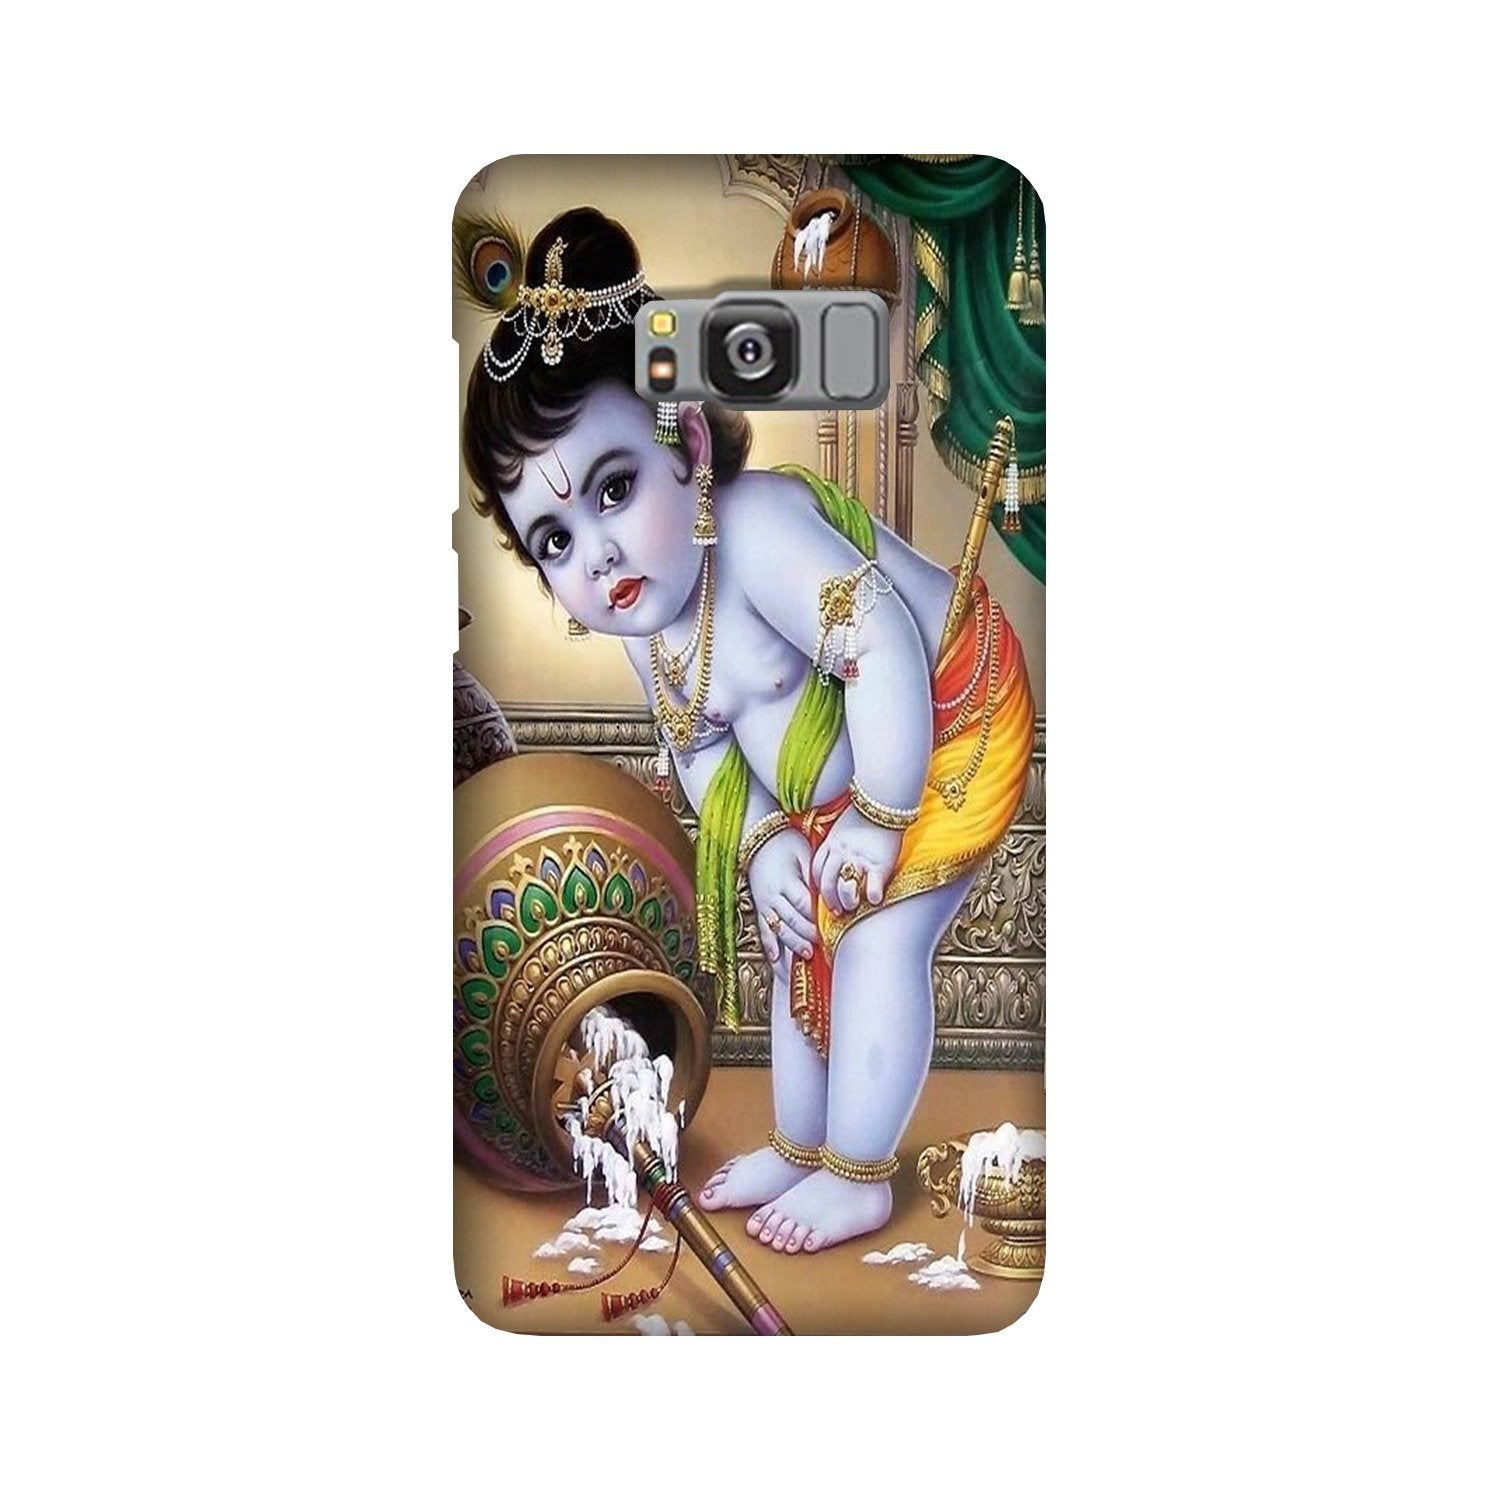 Bal Gopal2 Case for Galaxy S8 Plus